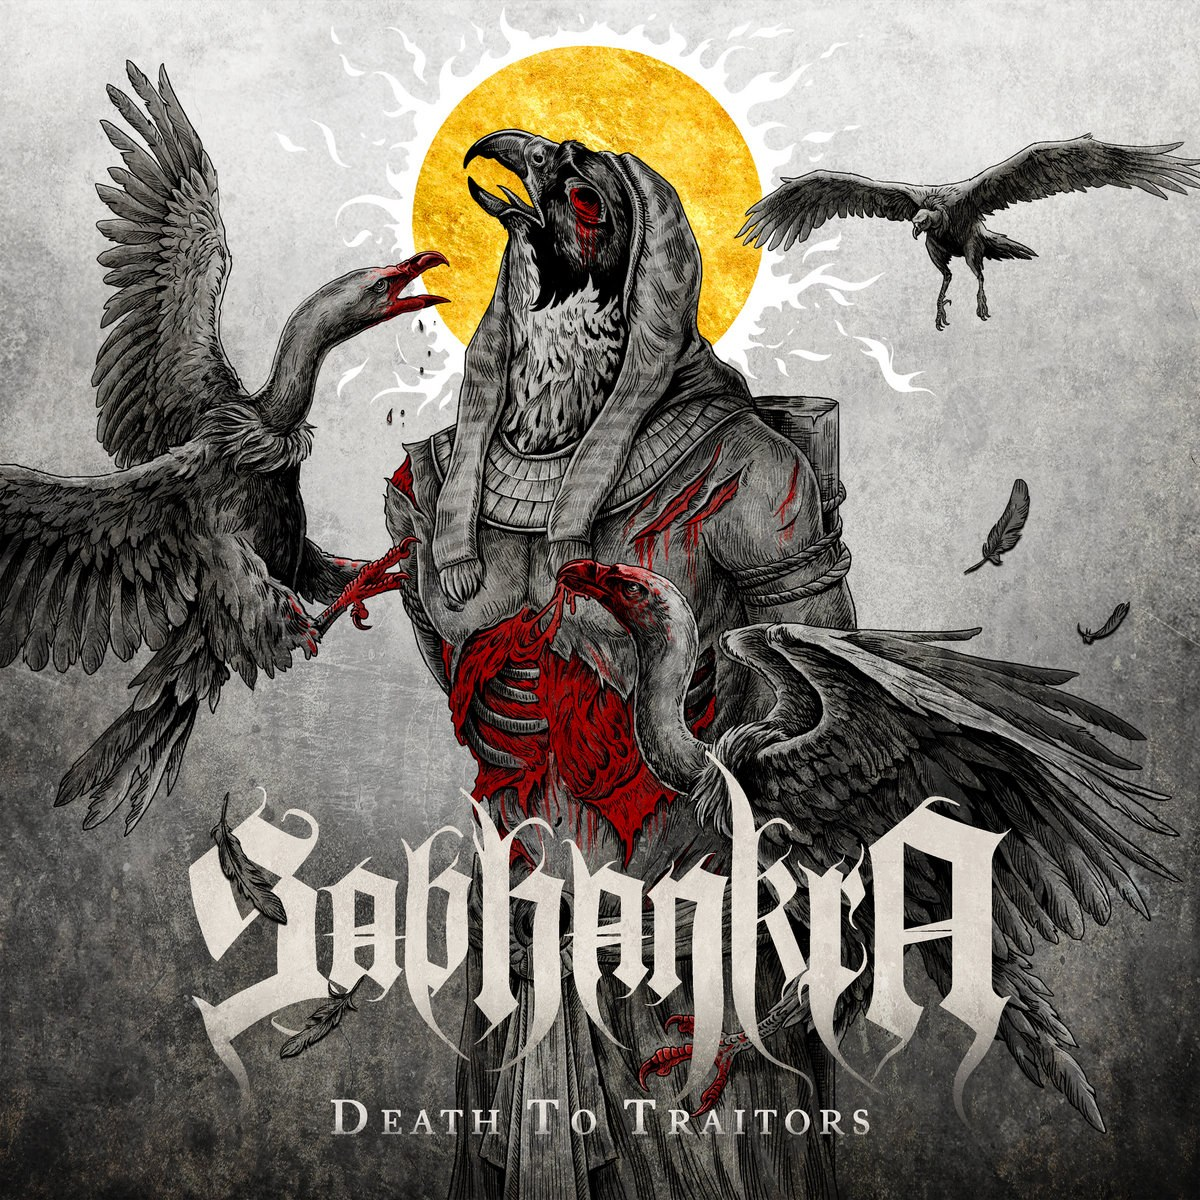 Reviews for Sabhankra - Death to Traitors